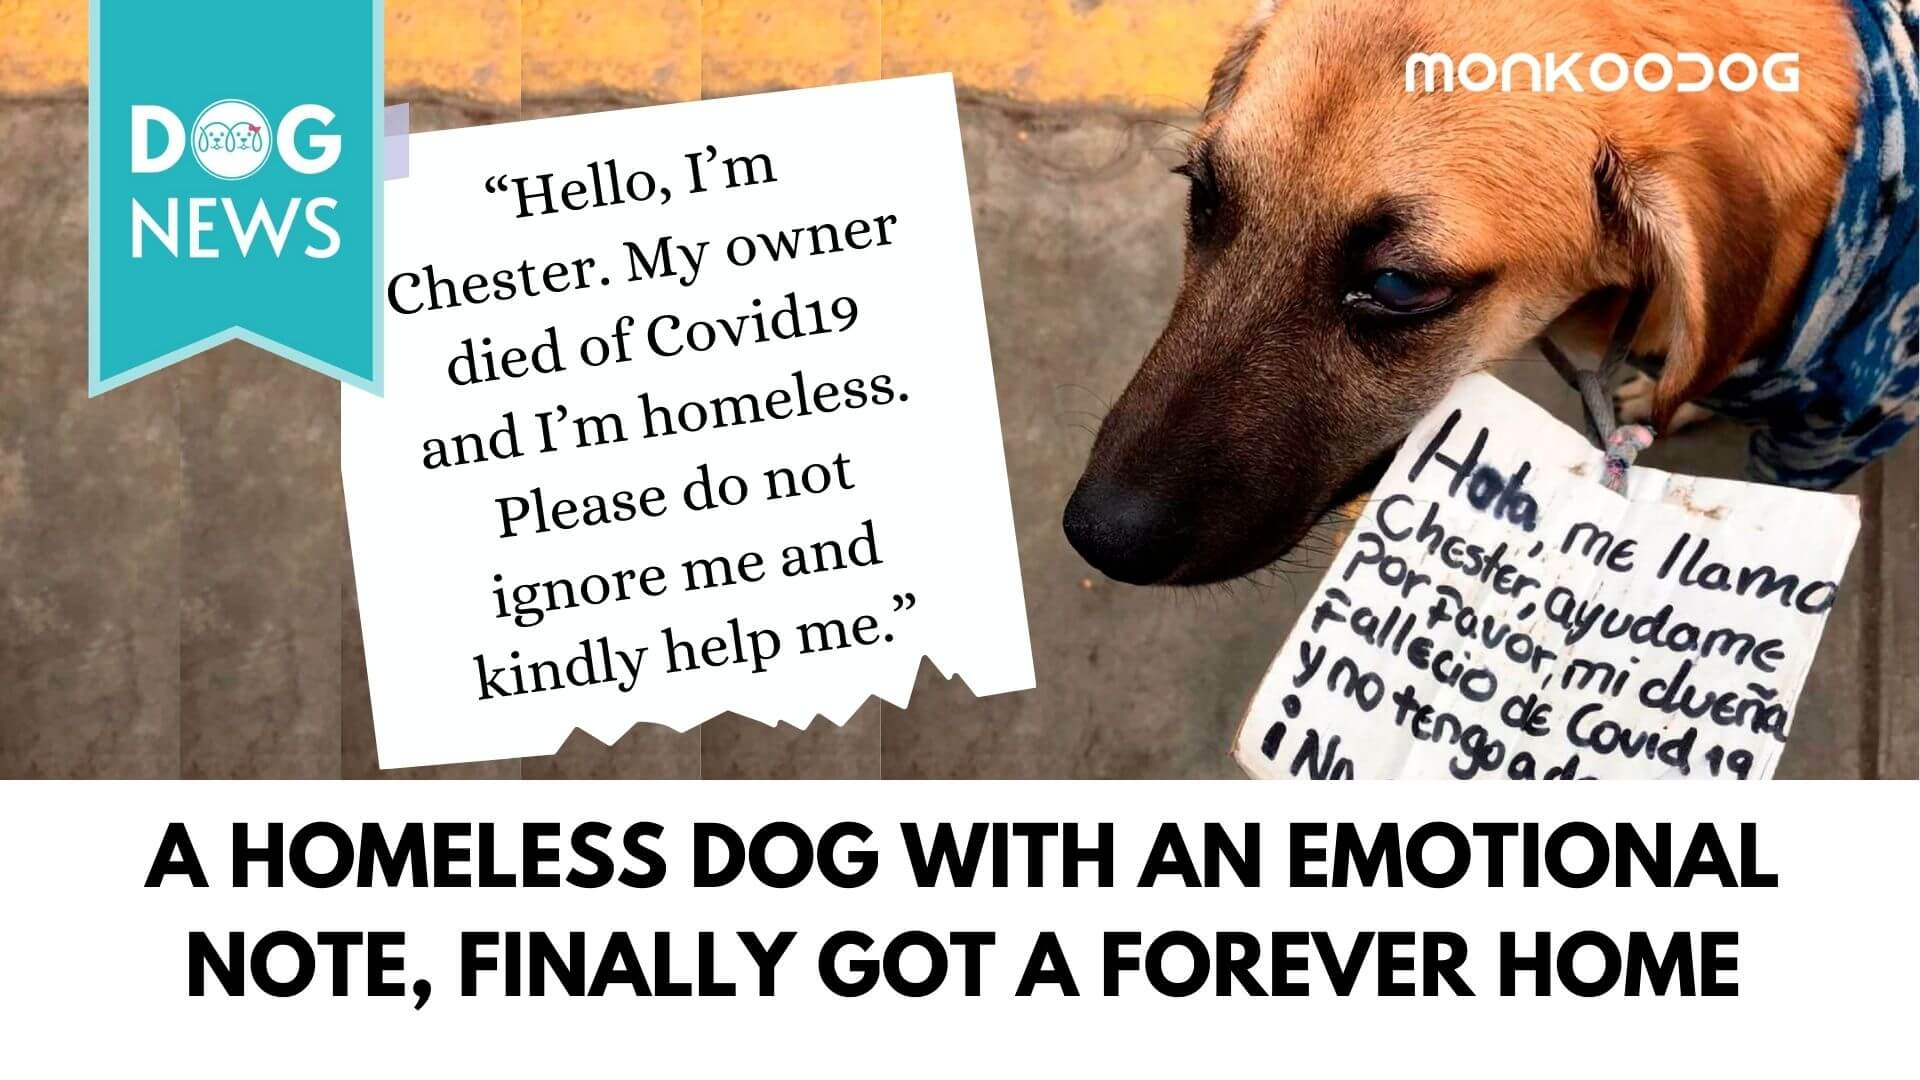 A heartwarming note attached to the collar of a homeless dog fetches him a forever home, finally.